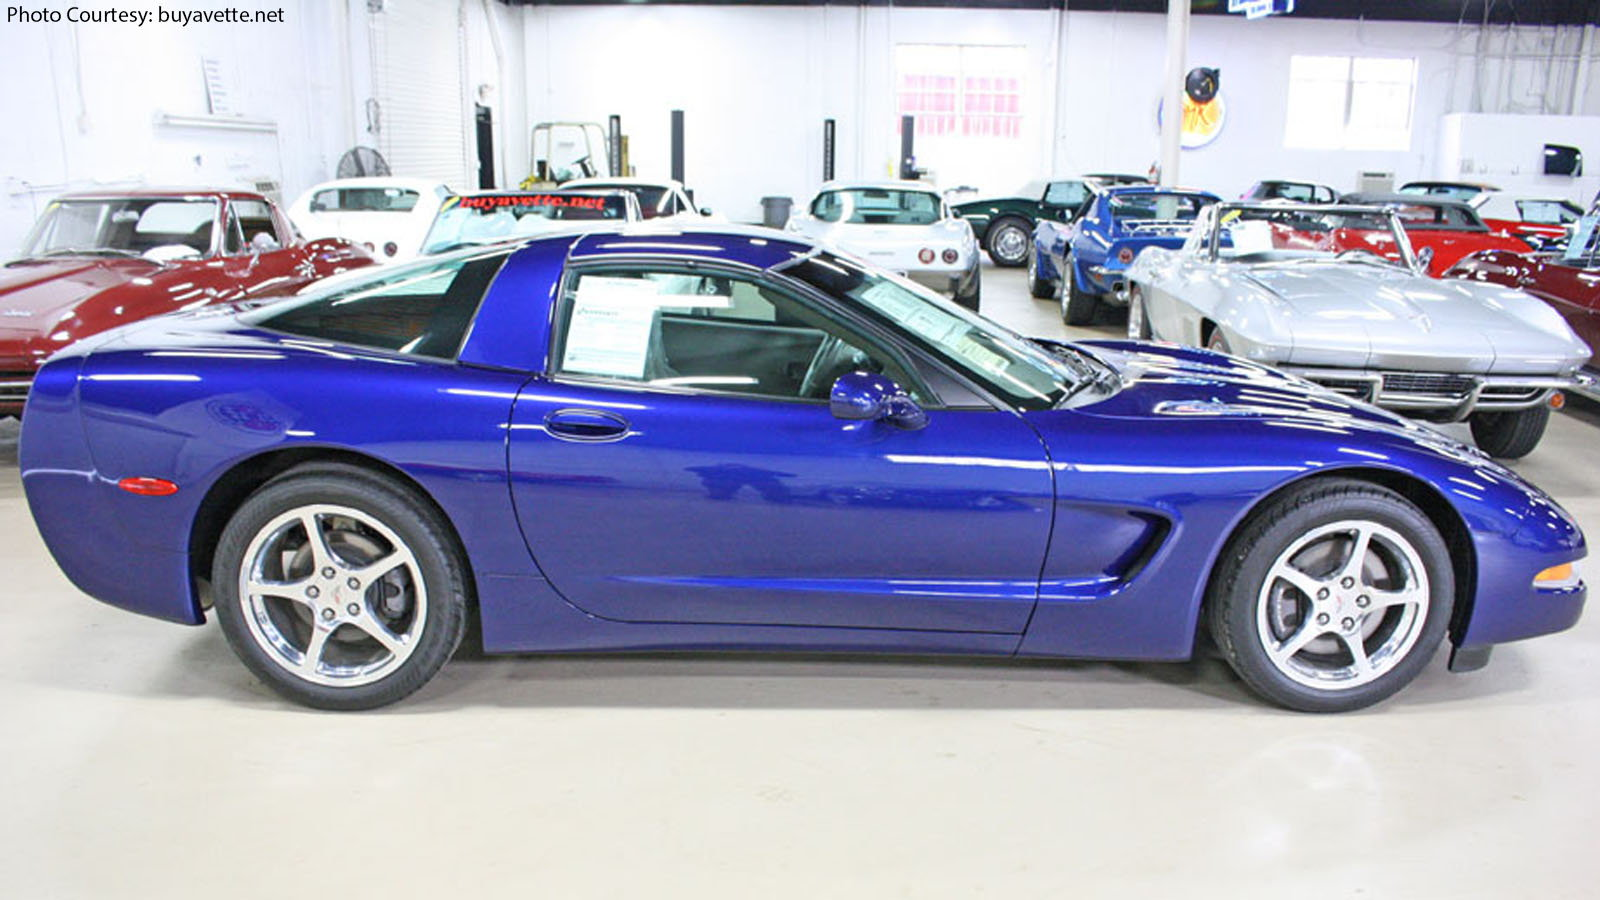 C5 Corvette, Last Production model